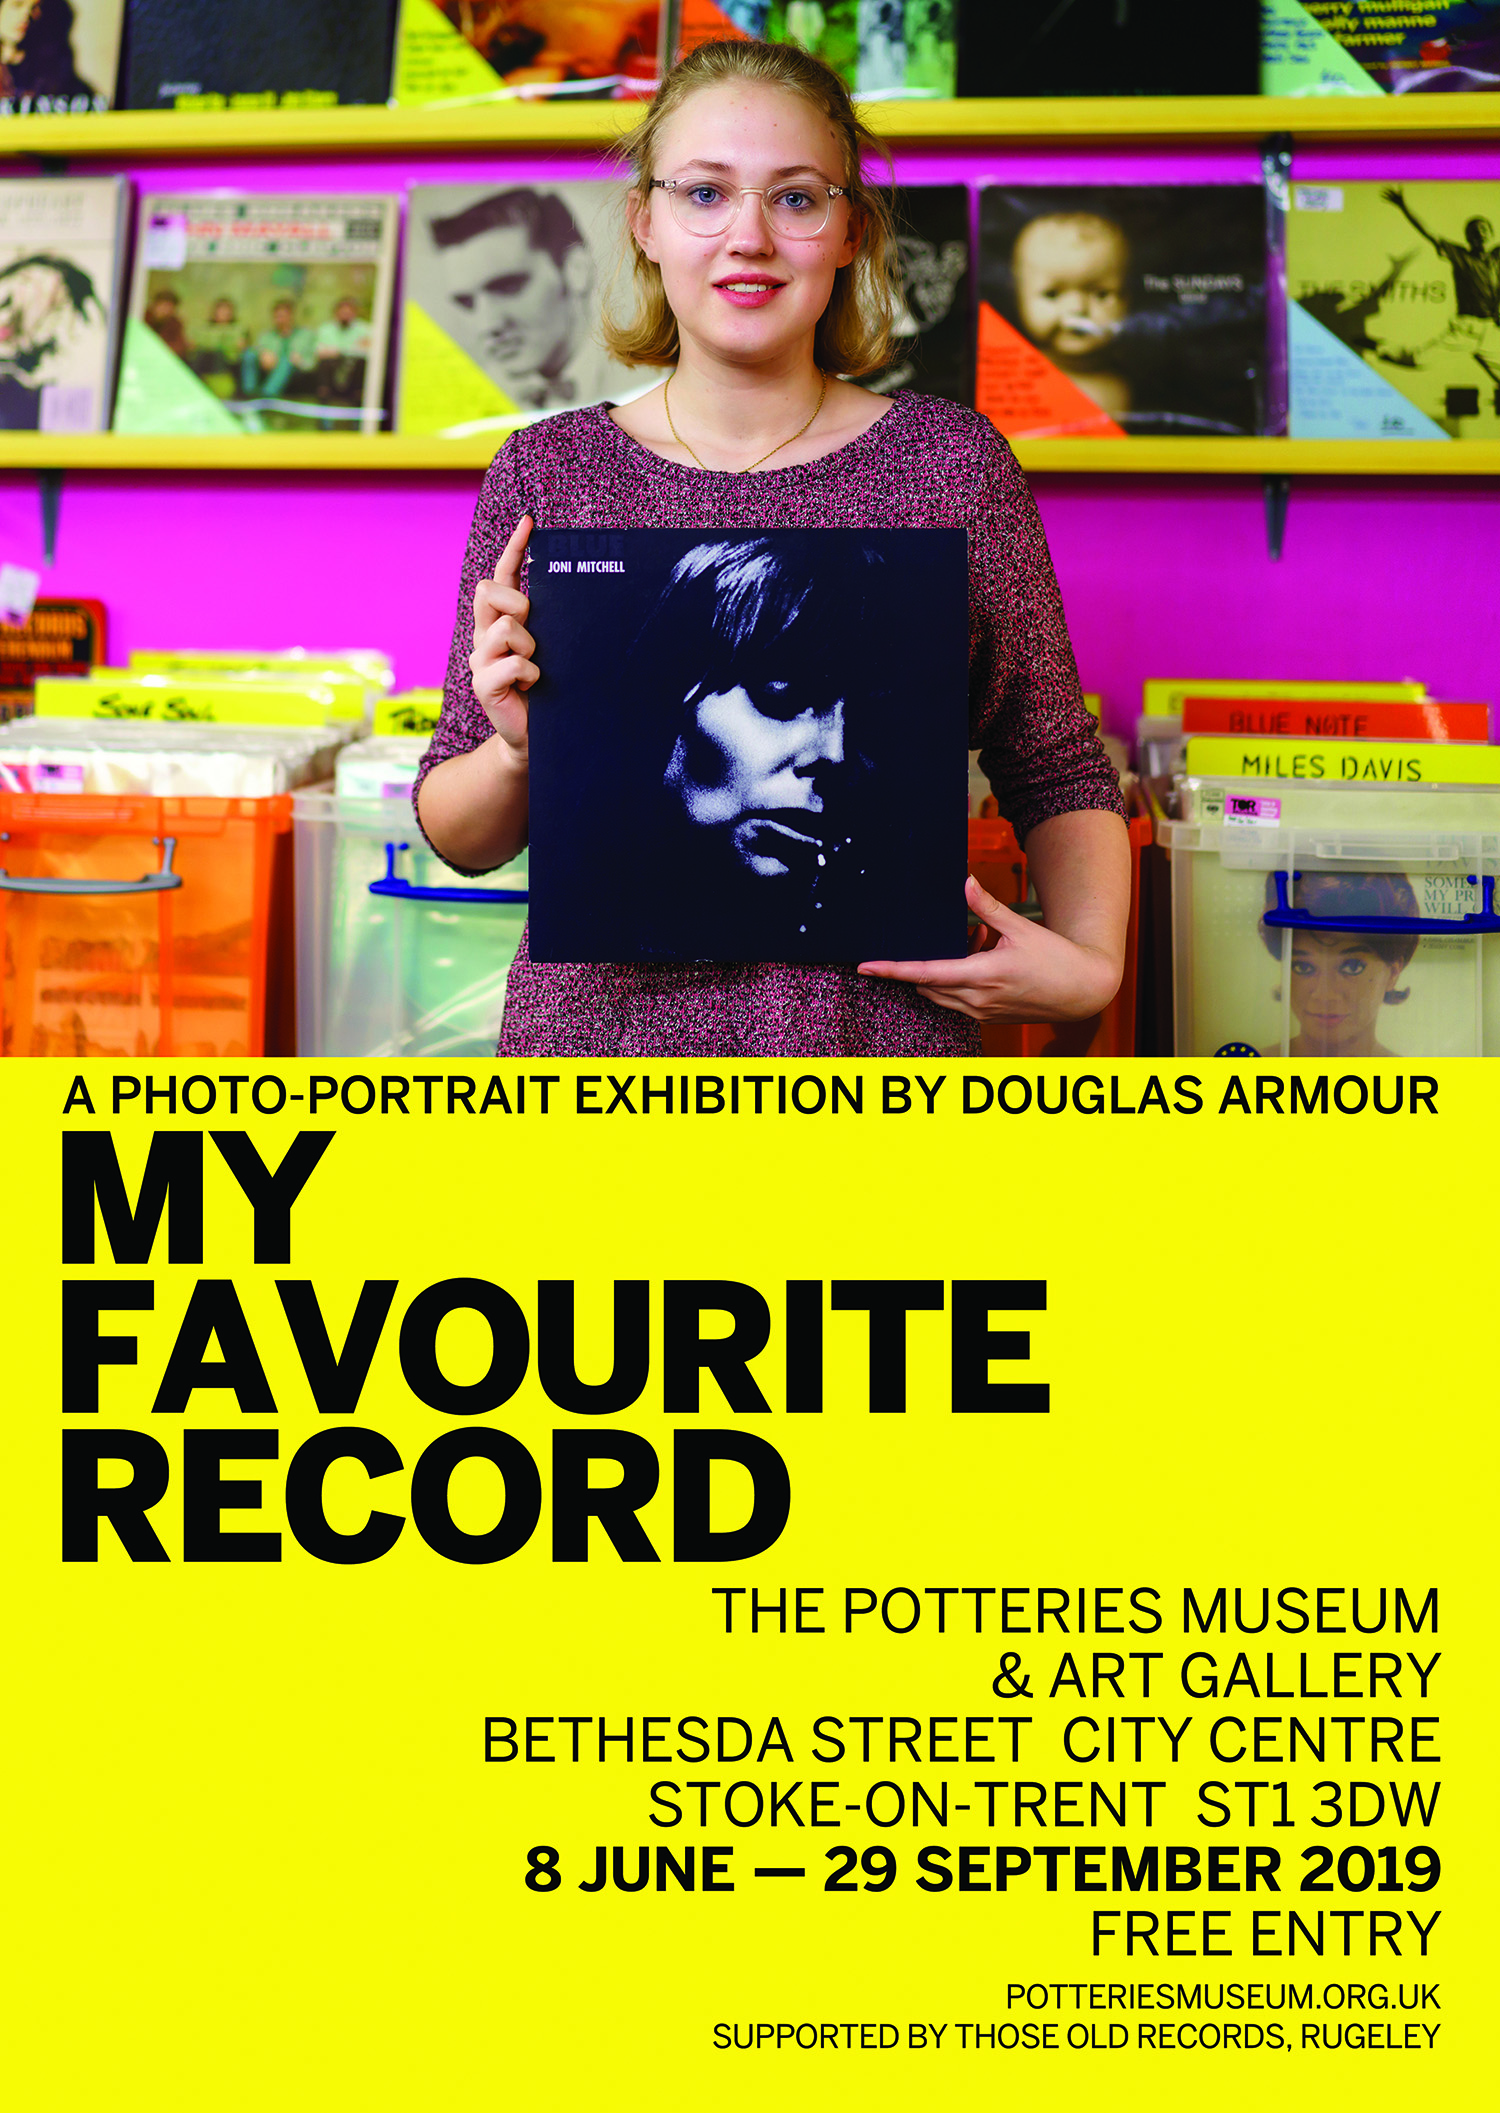 My Favourite Record exhibition poster